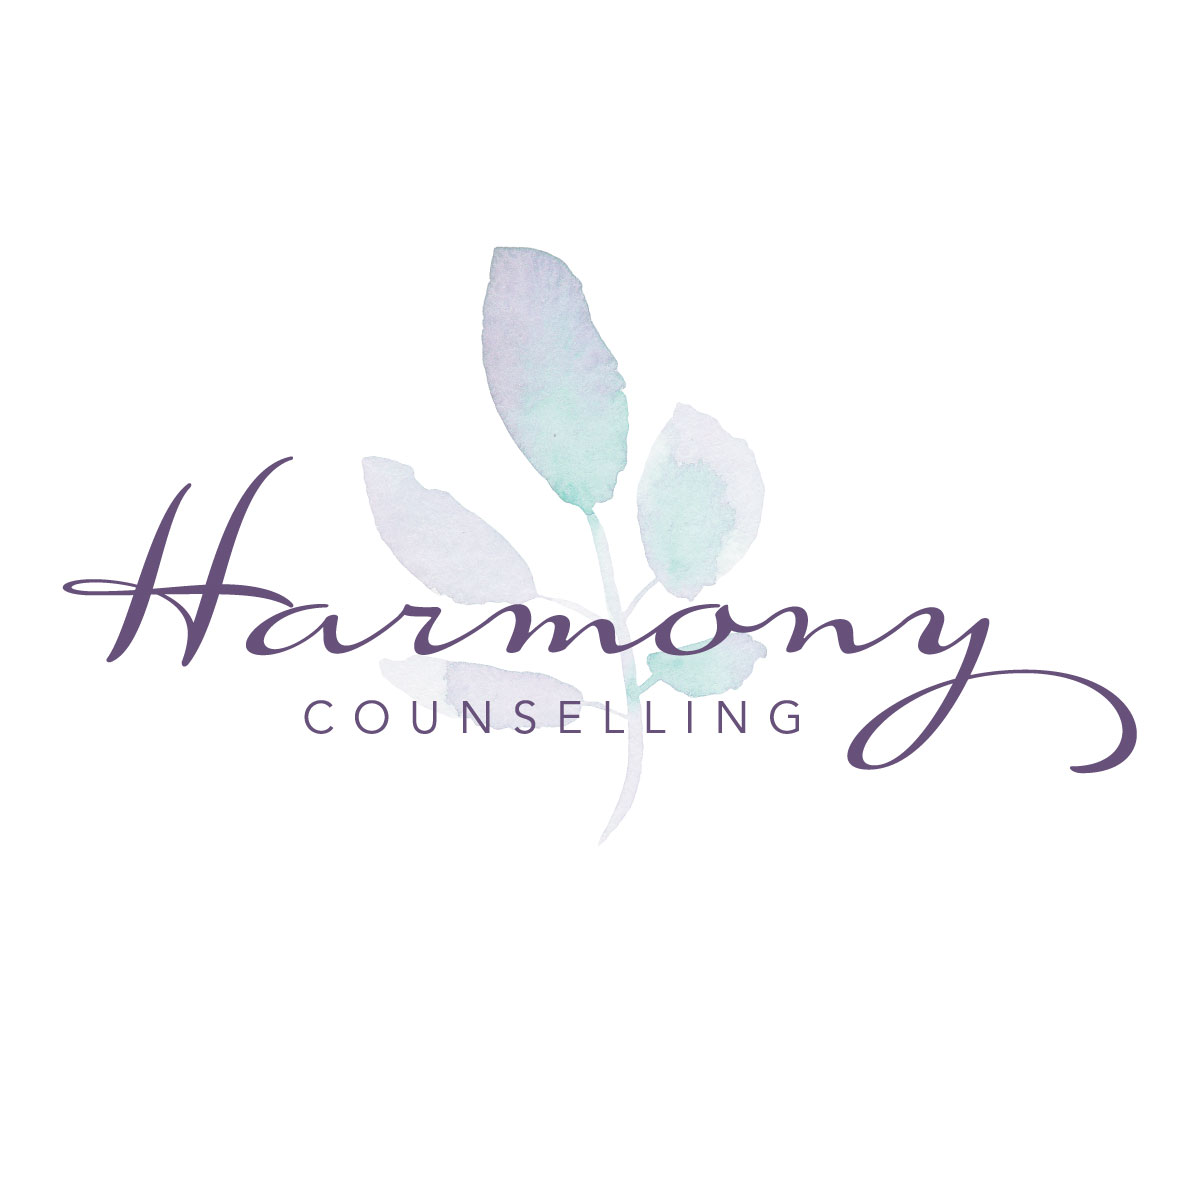 https://micheledonnison.co.uk/wp-content/uploads/2017/12/Harmony-Councelling-Square-Profile-Pic.jpg